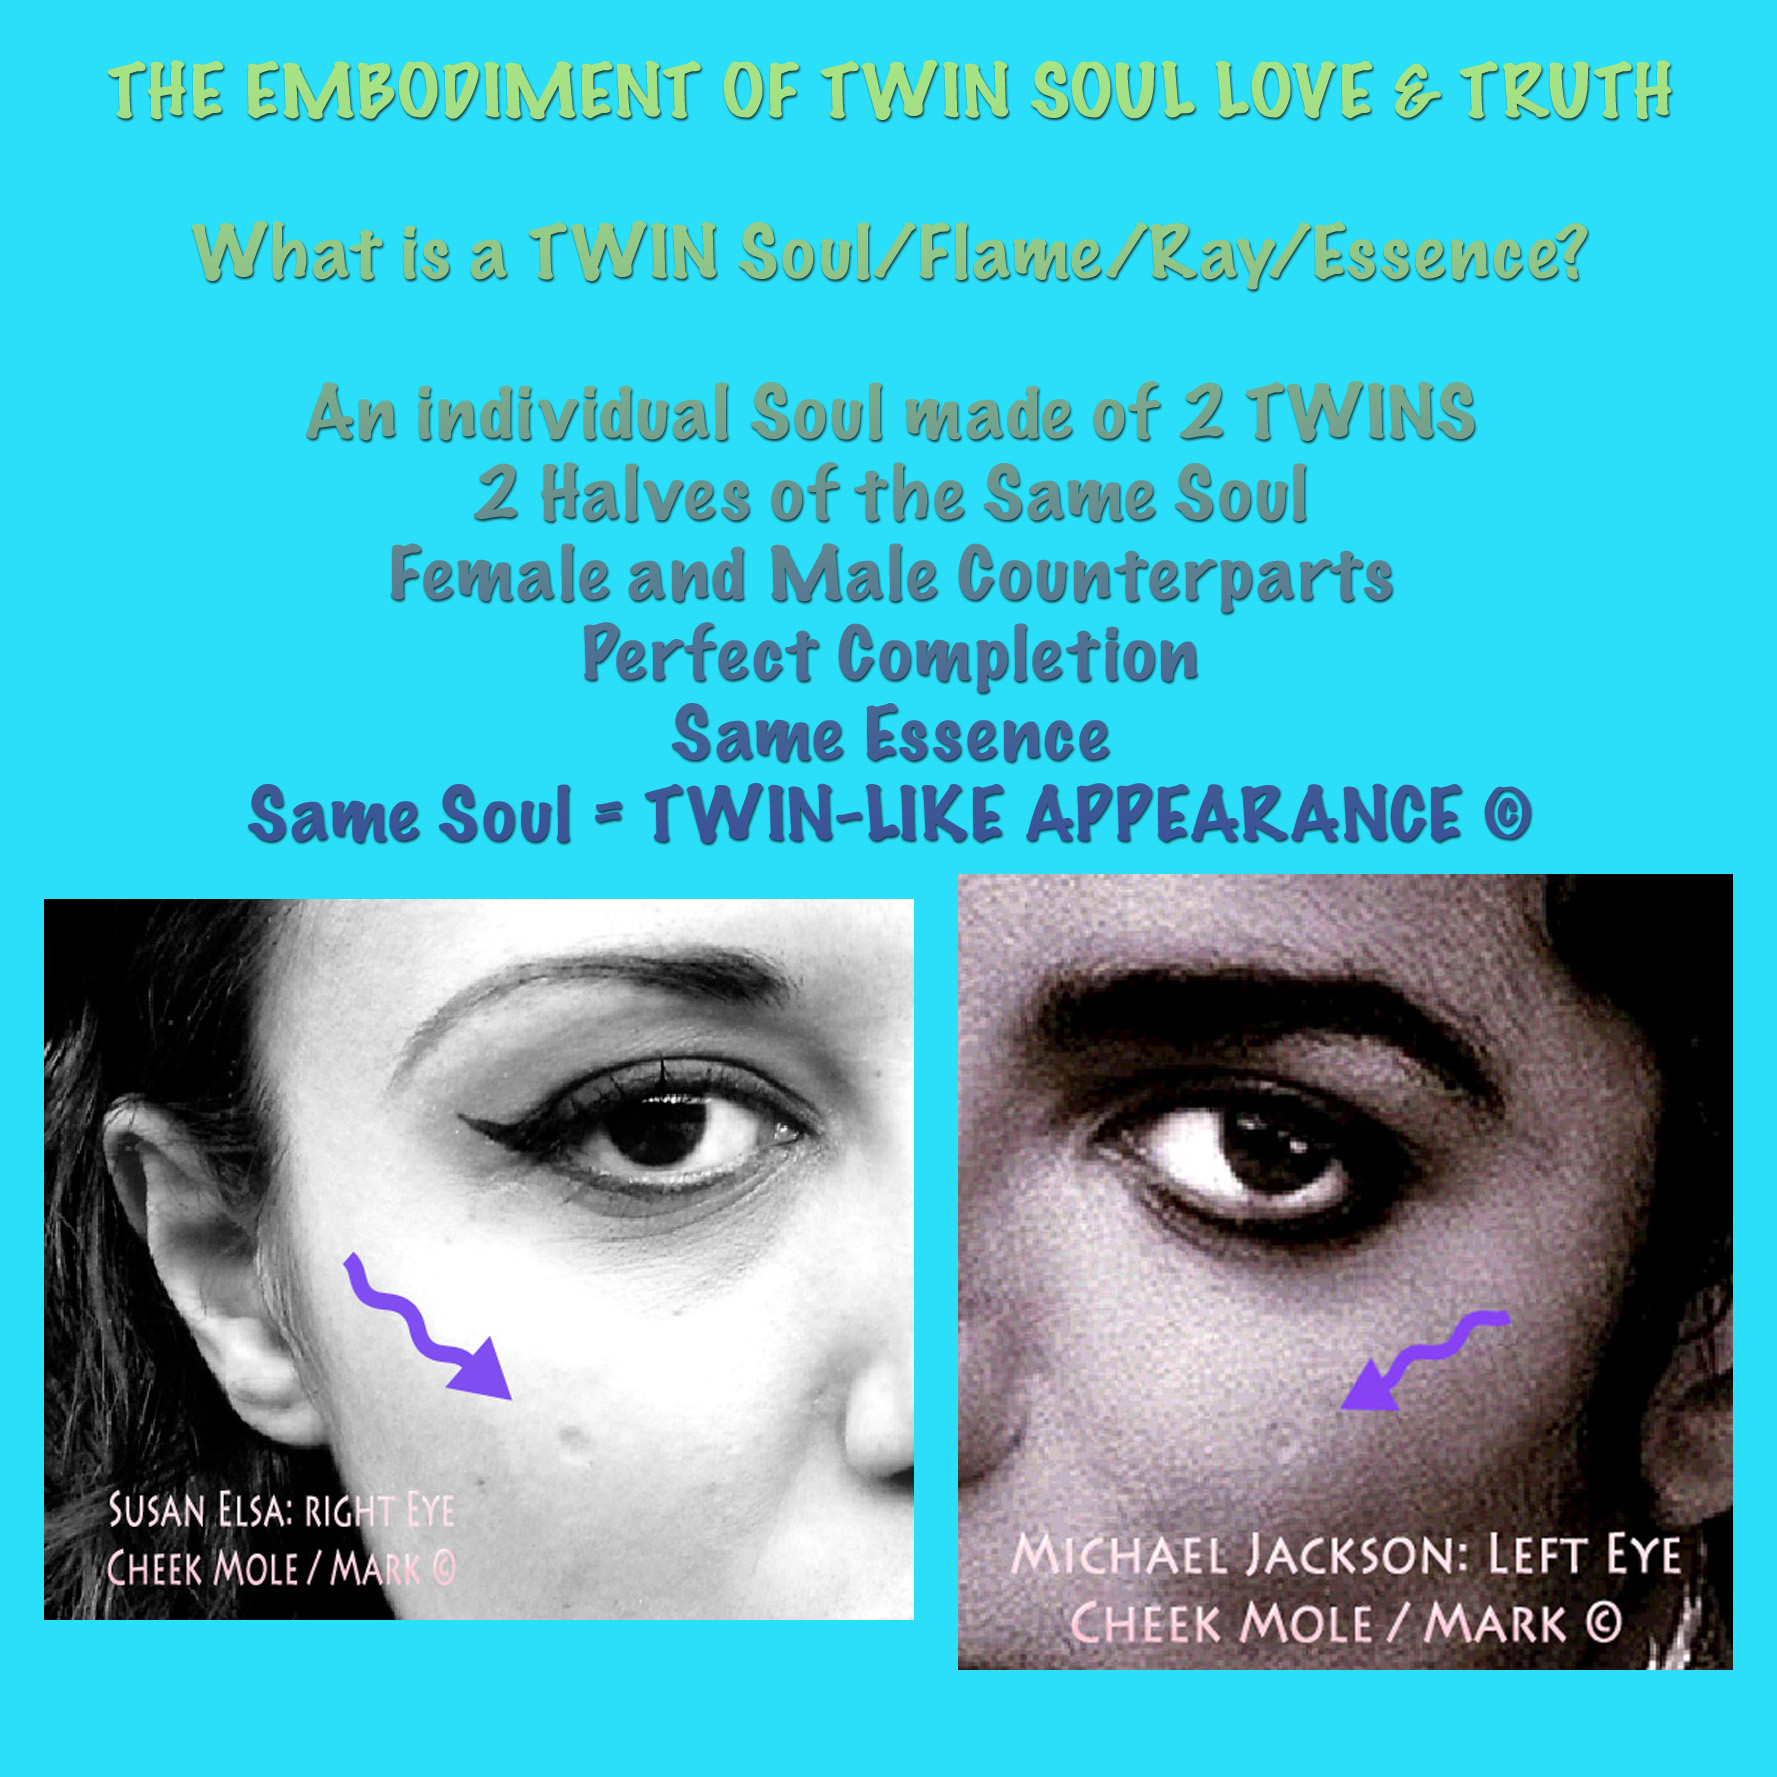 Michael Jackson: Increased Psychic Skills as a Twin Flame Soul Sign